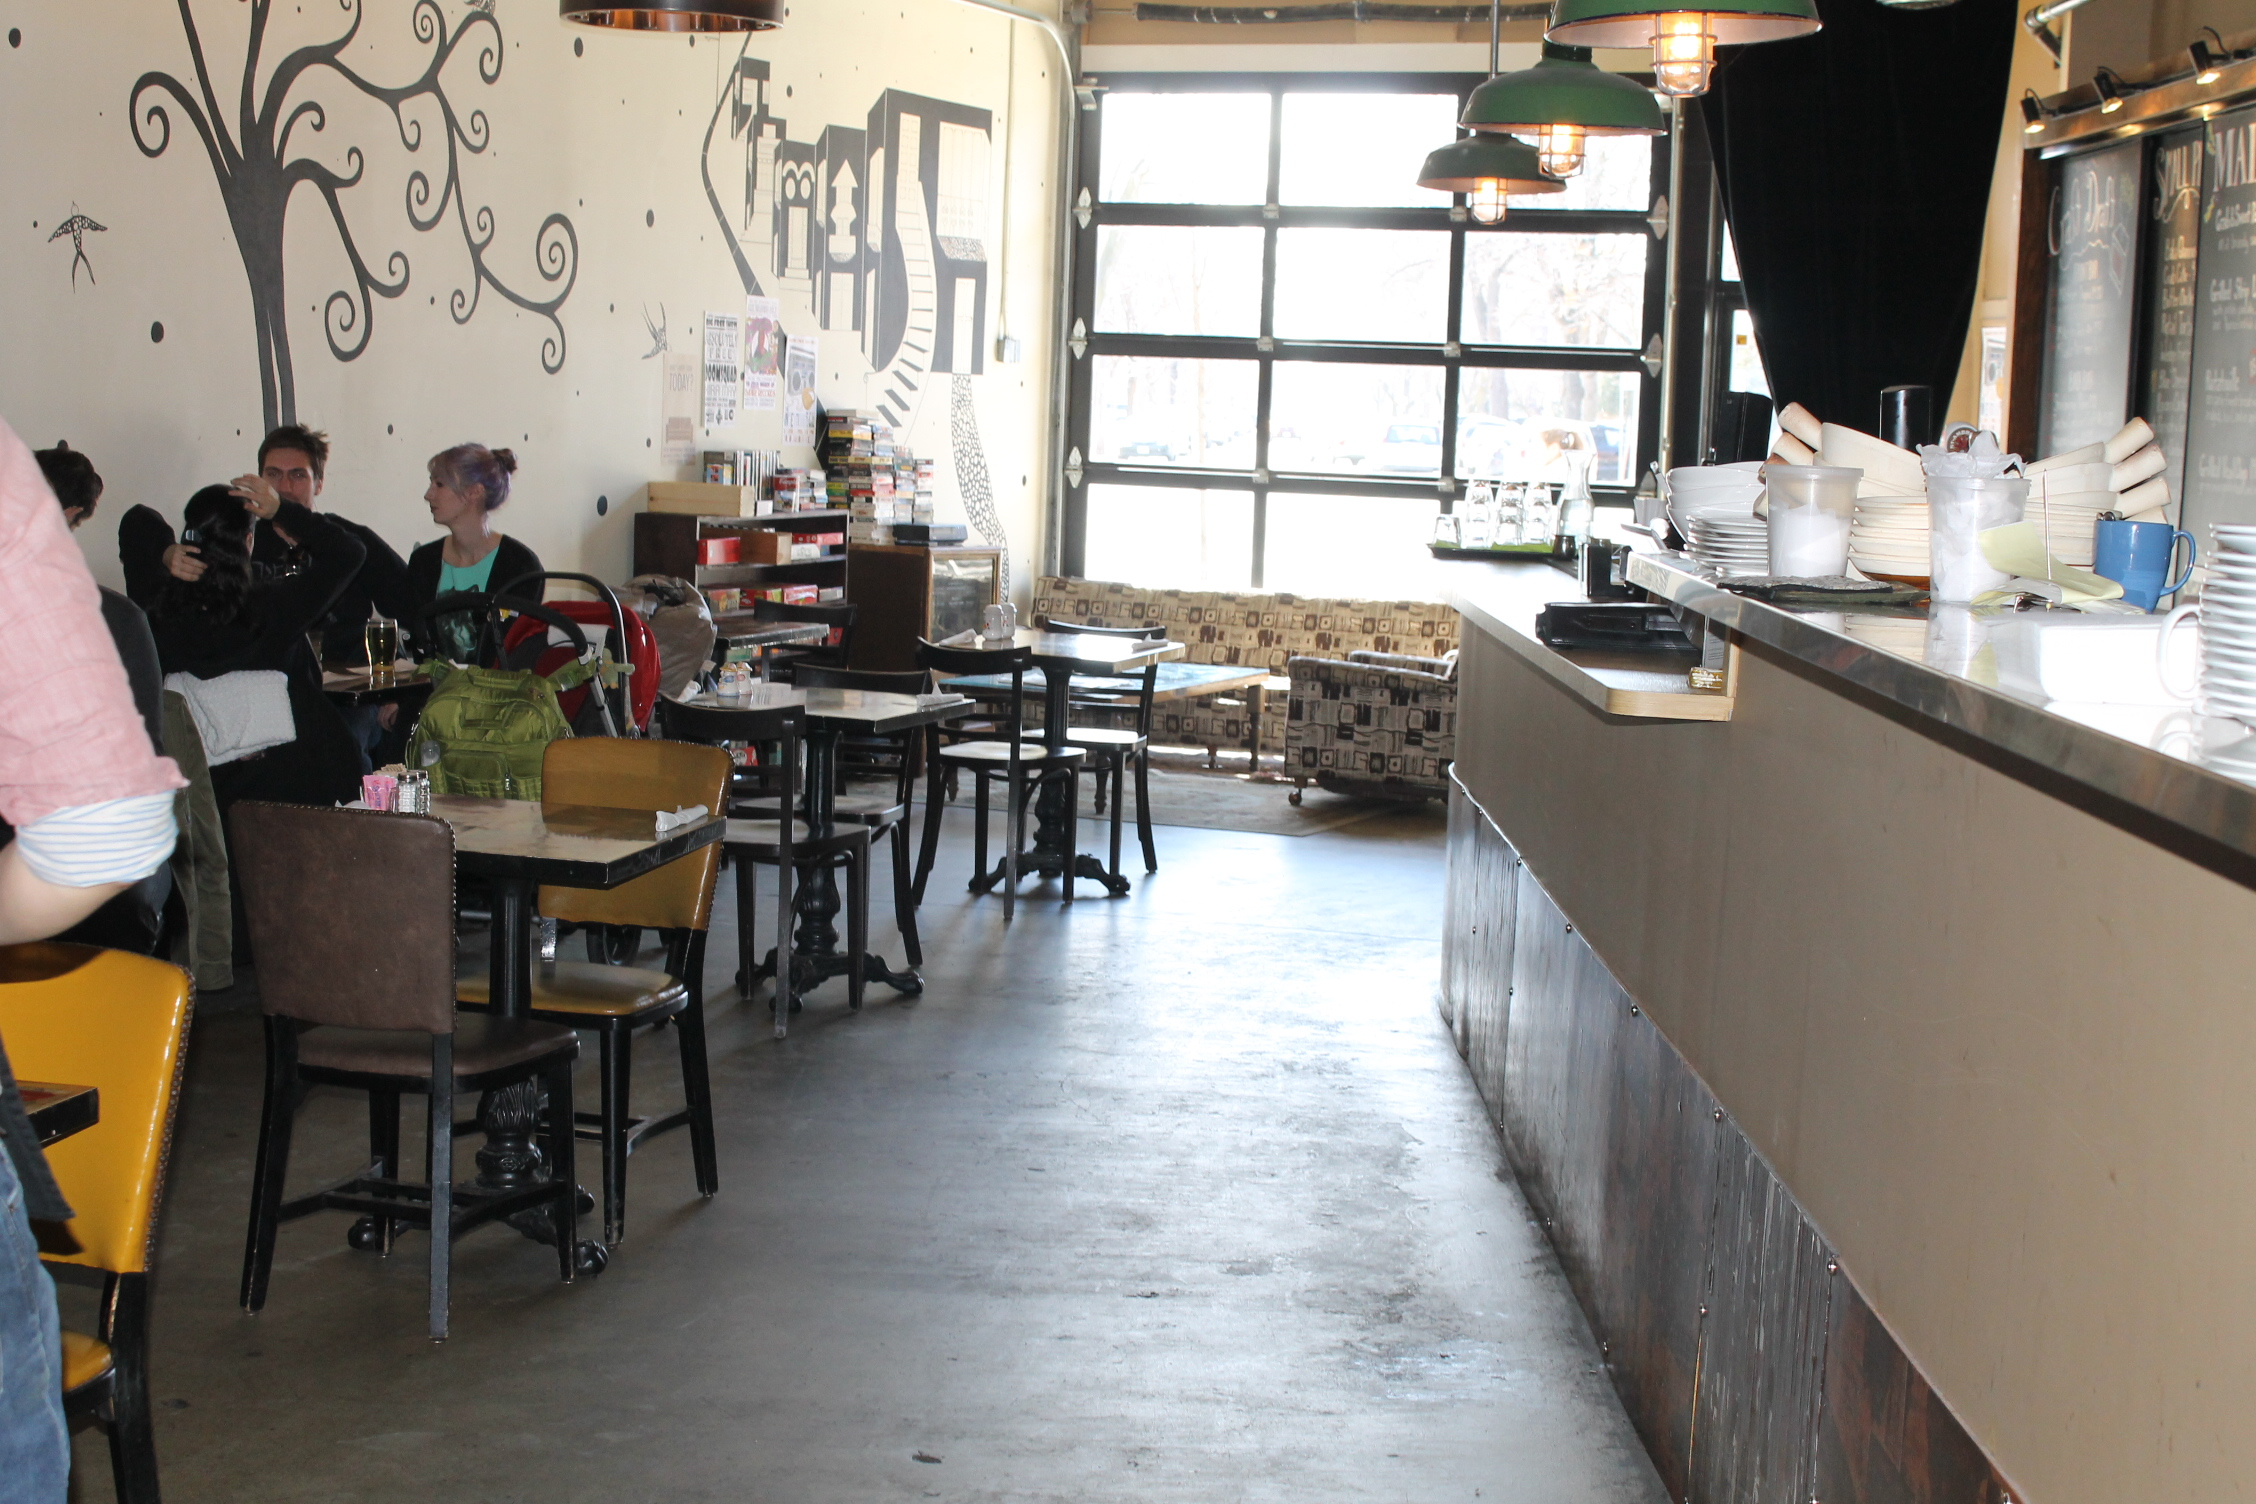 Picture of accessible interior of restaurant. Wide pathway displayed in front of kitchen